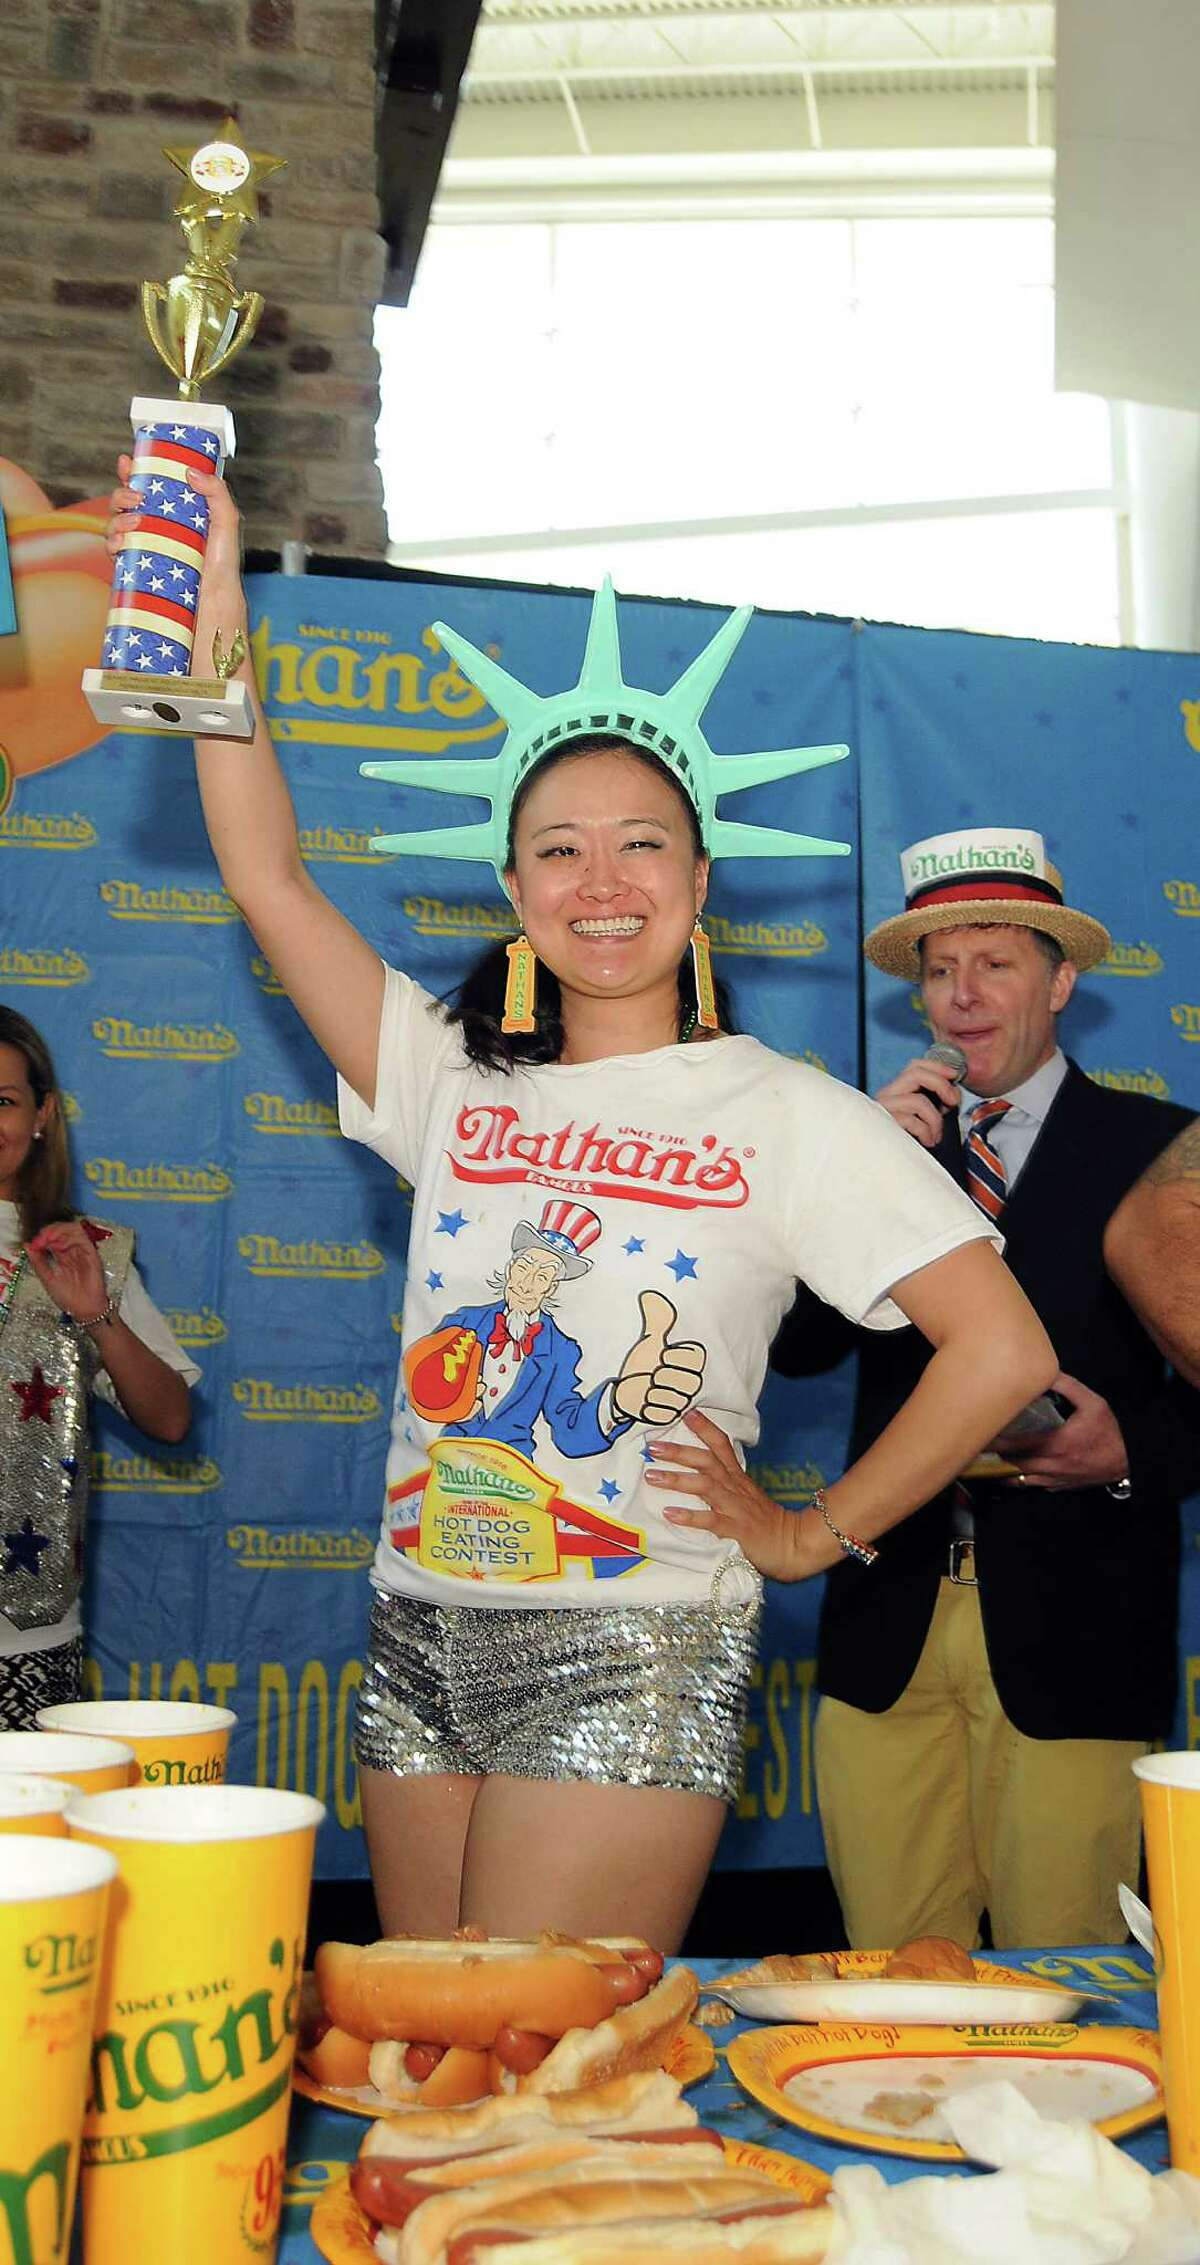 Mary Bowers holds her trophy after winning the female category at the Nathan's Famous Hot Dog Eating Contest regional qualifier at Memorial City Mall Saturday May 03, 2014. Bowers ate 11 3/4 hot dogs to win the title.(Dave Rossman photo)